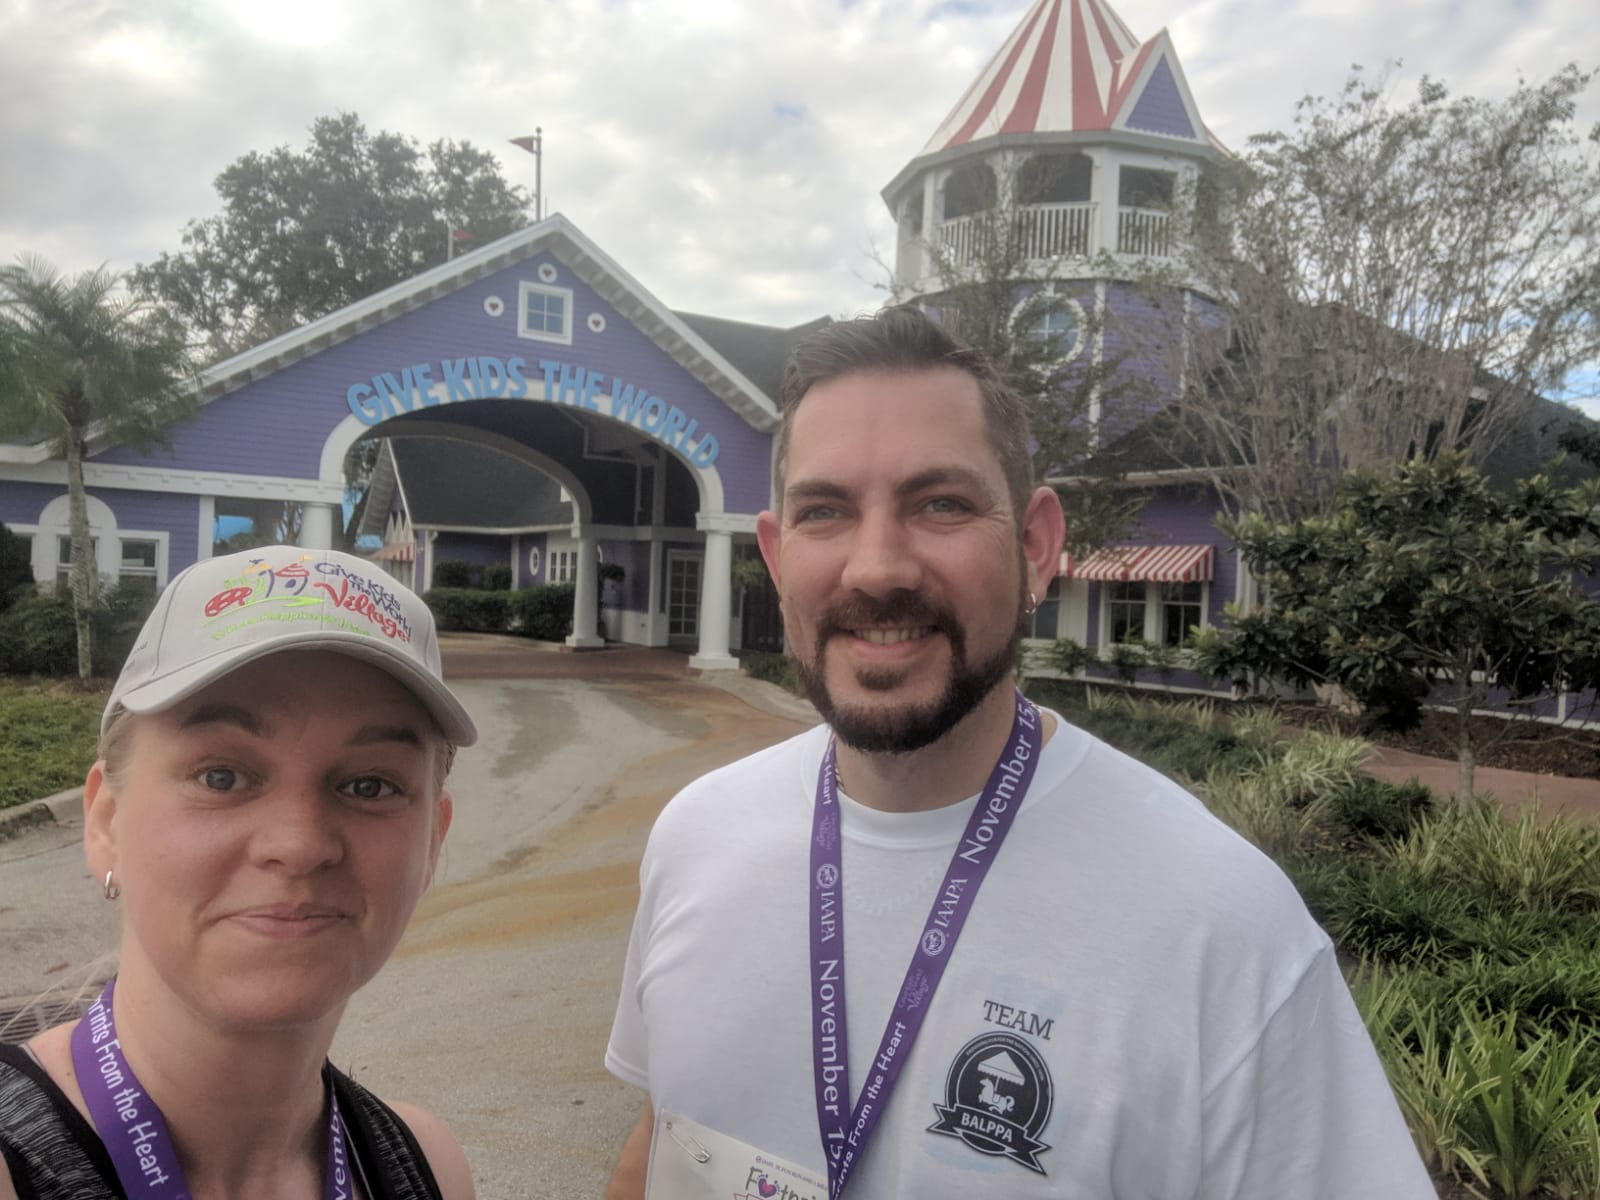 Kelly Herrick and Phil Higgins post IAAPA Footprints from the Heart 5K Run